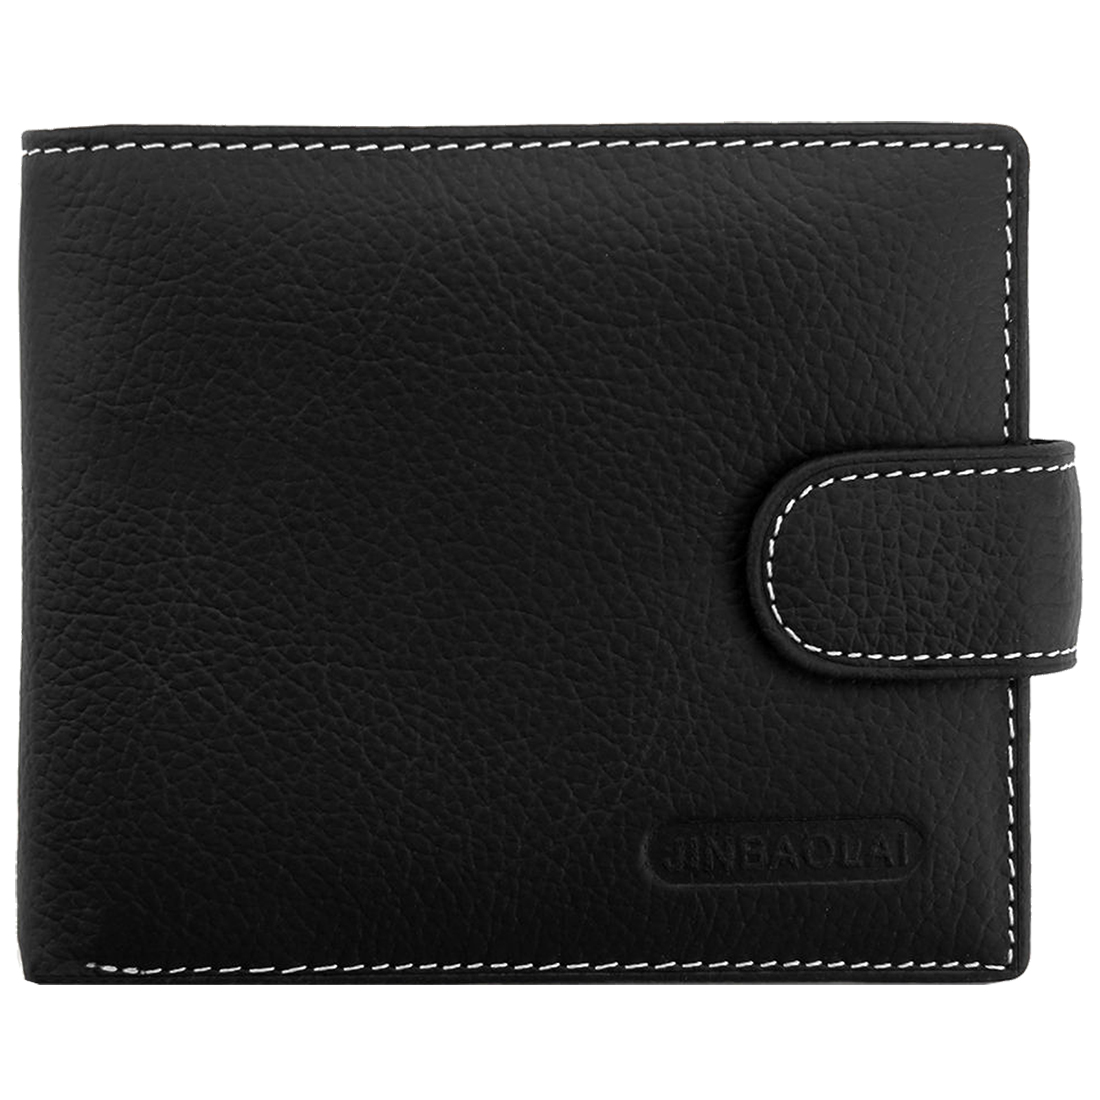 SCYL JINBAOLAI Black Mens Luxury Soft Business Leather Bifold Wallet Credit Card Holder Purse<br><br>Aliexpress